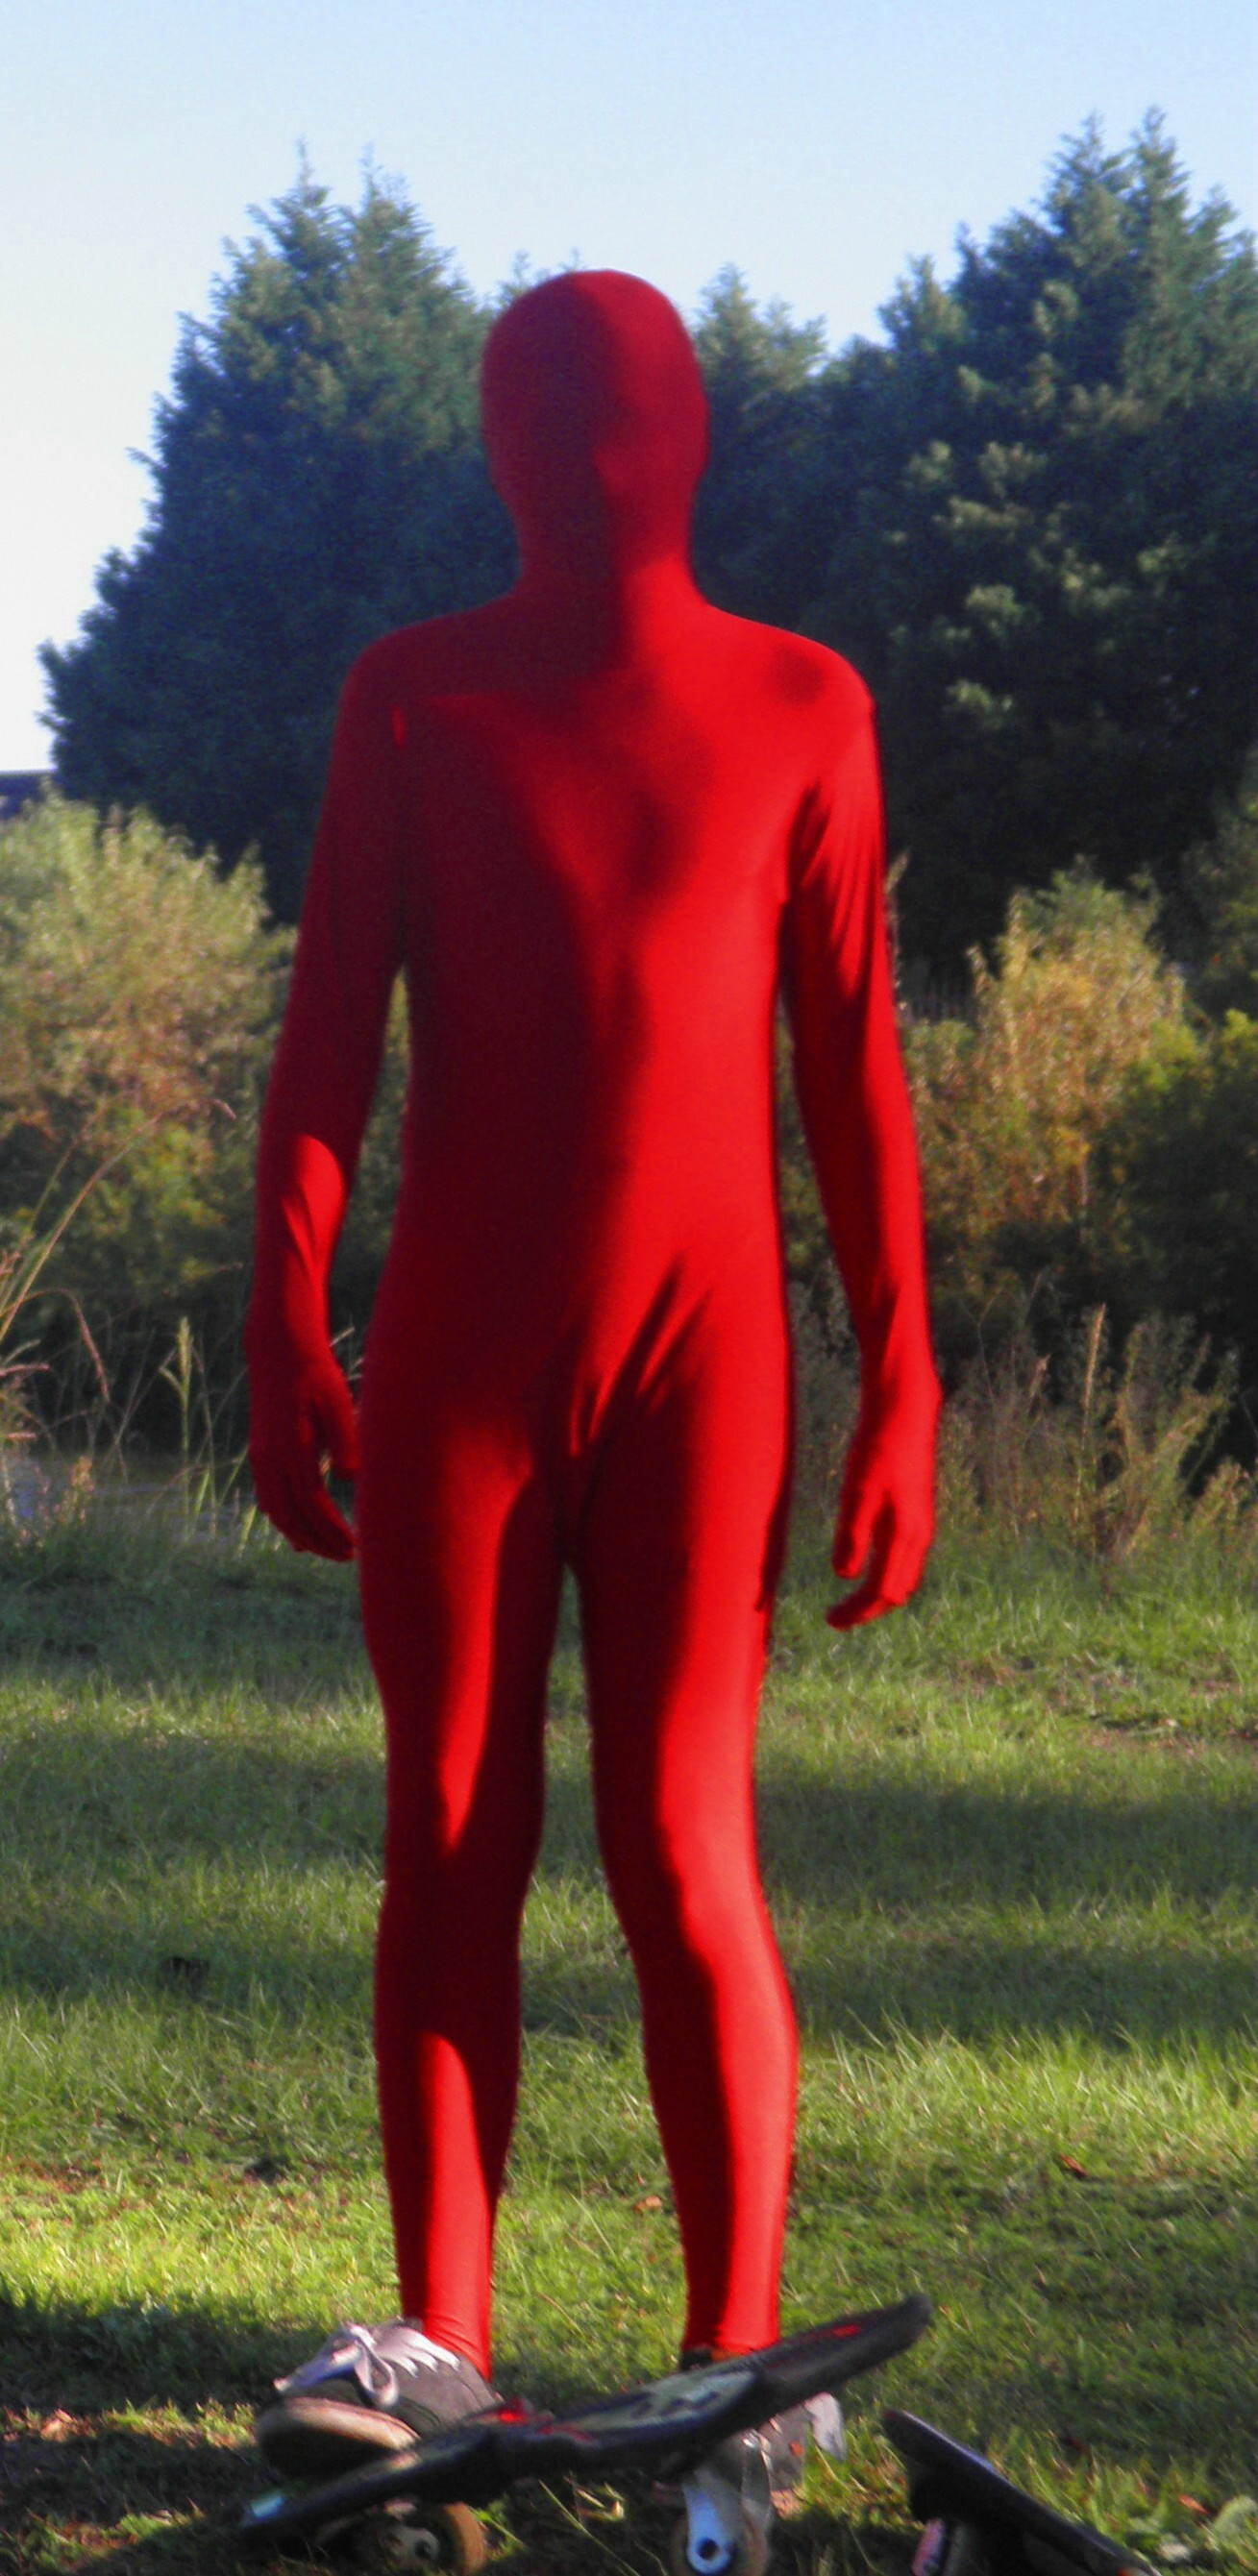 Red Man Skate Boarding